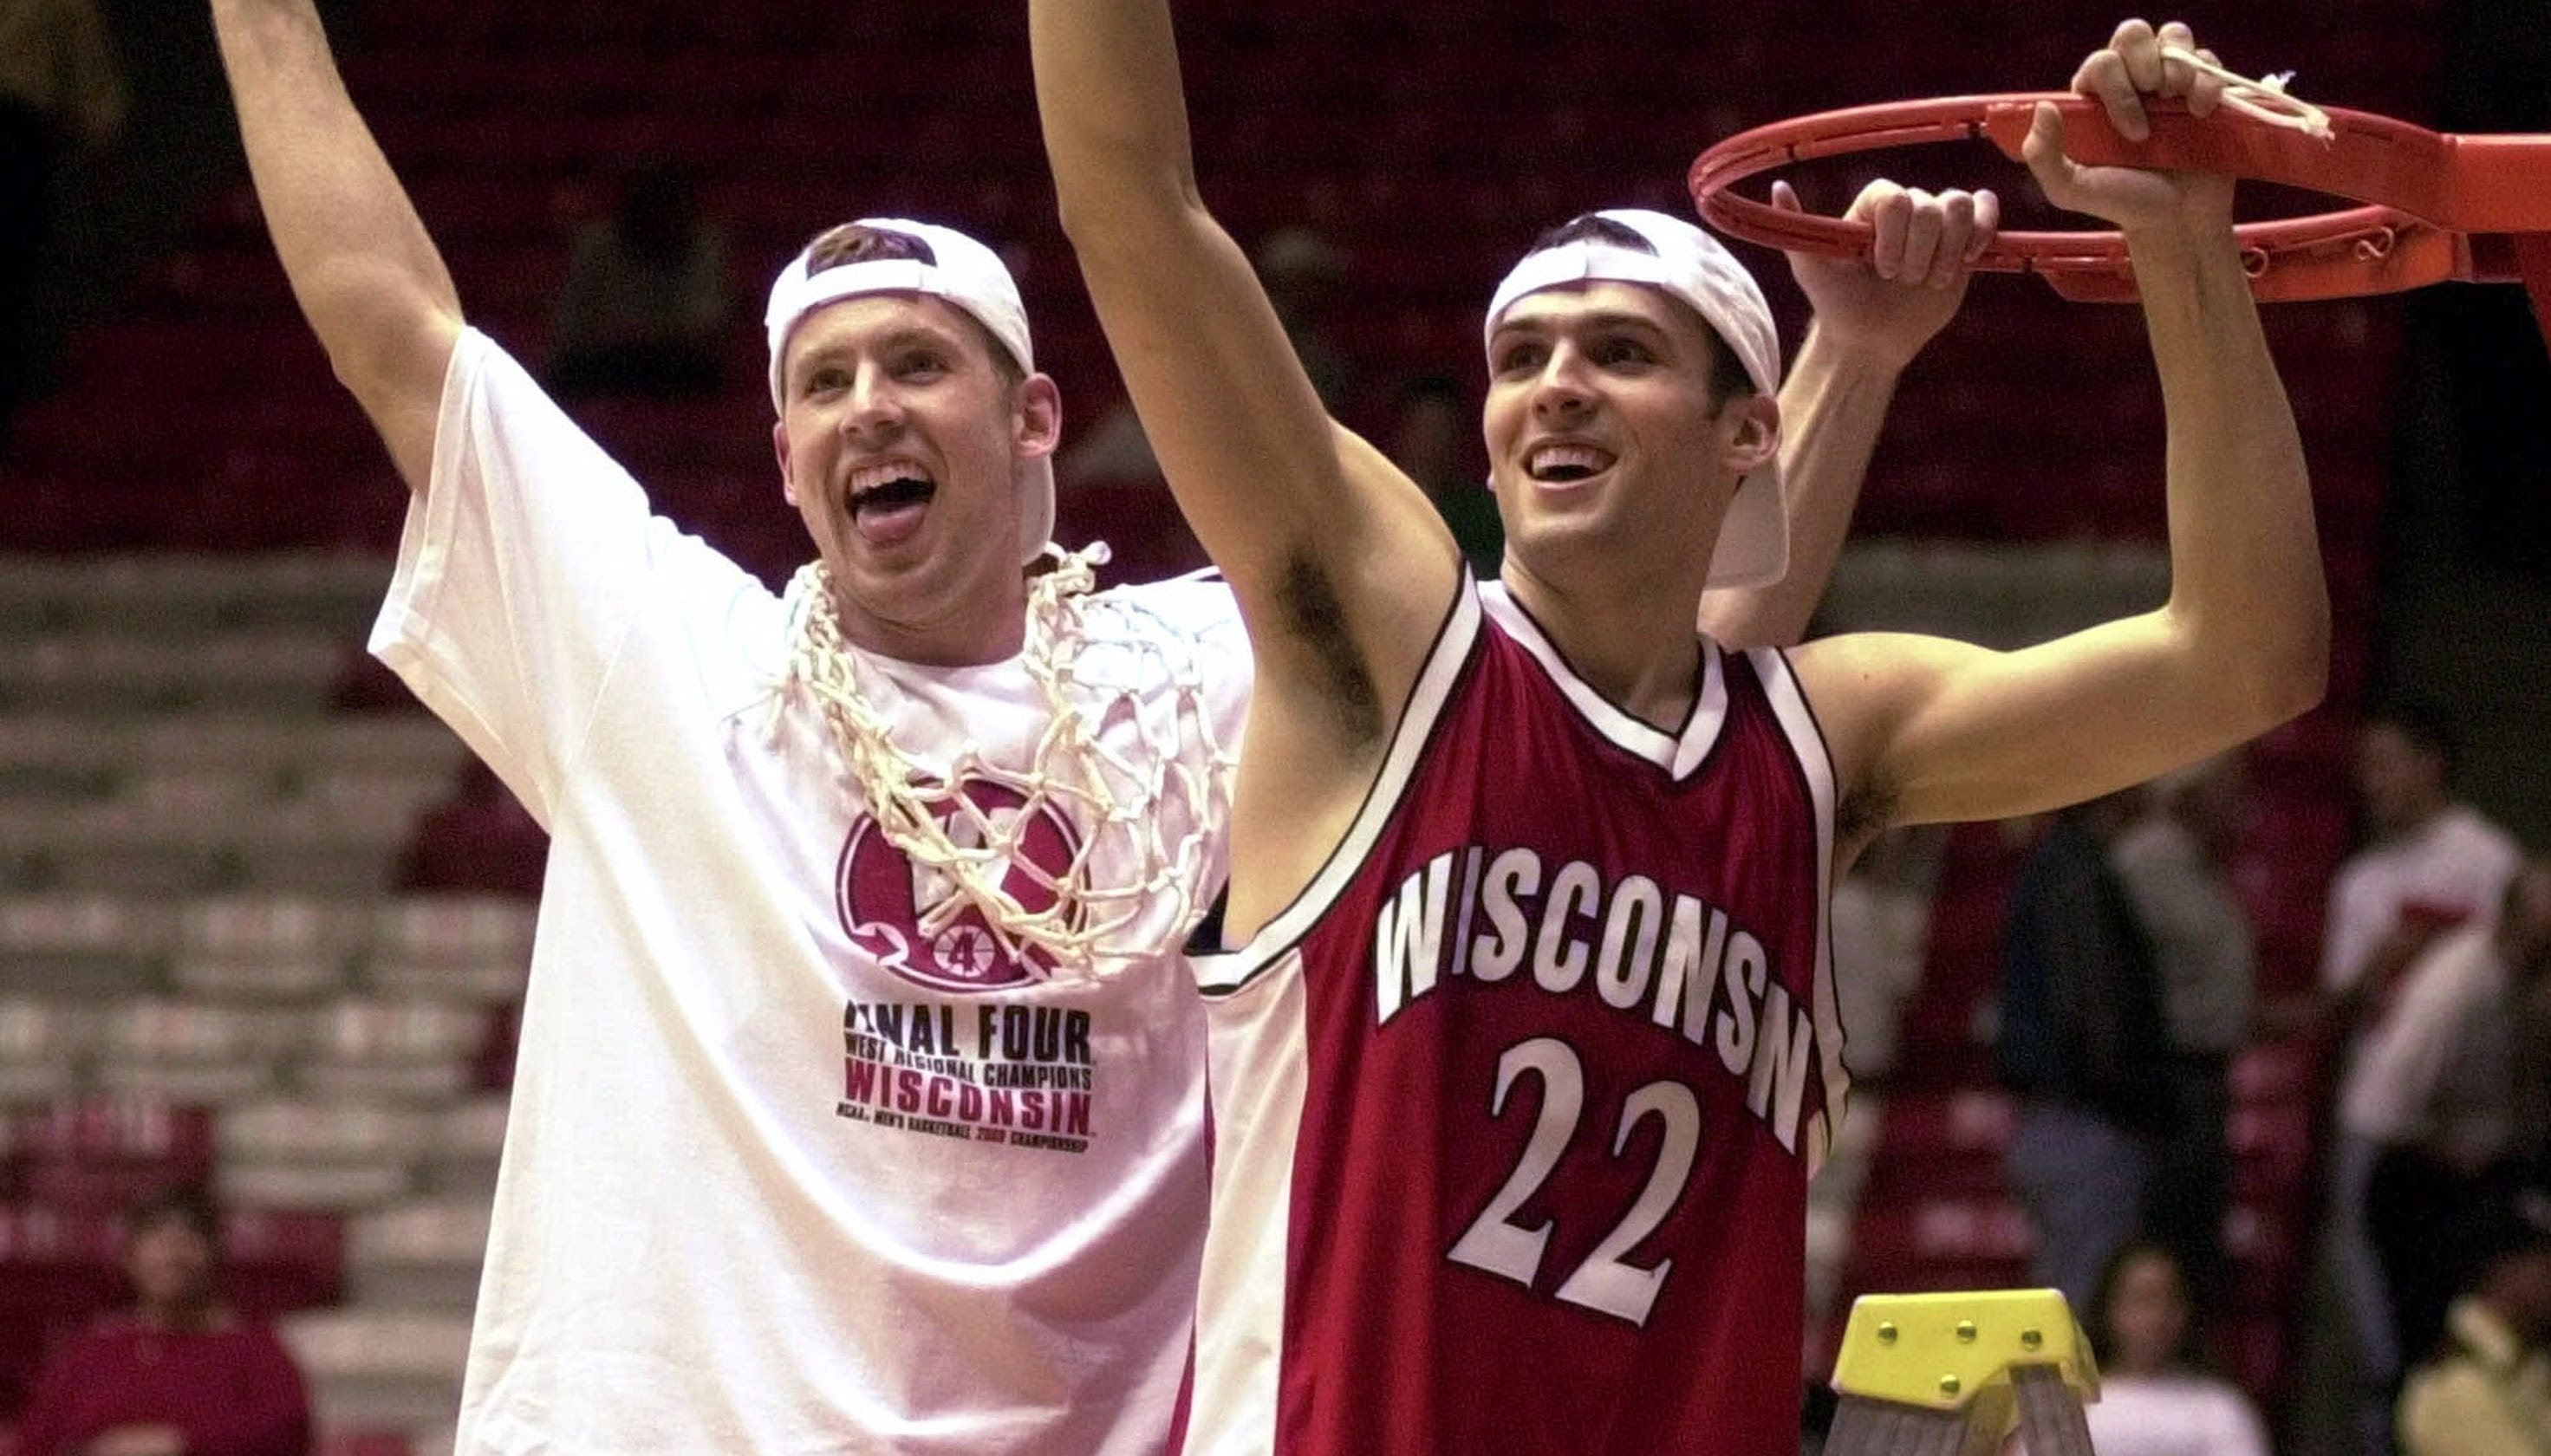 Oral history of the 2000 Wisconsin Badgers Final Four basketball team